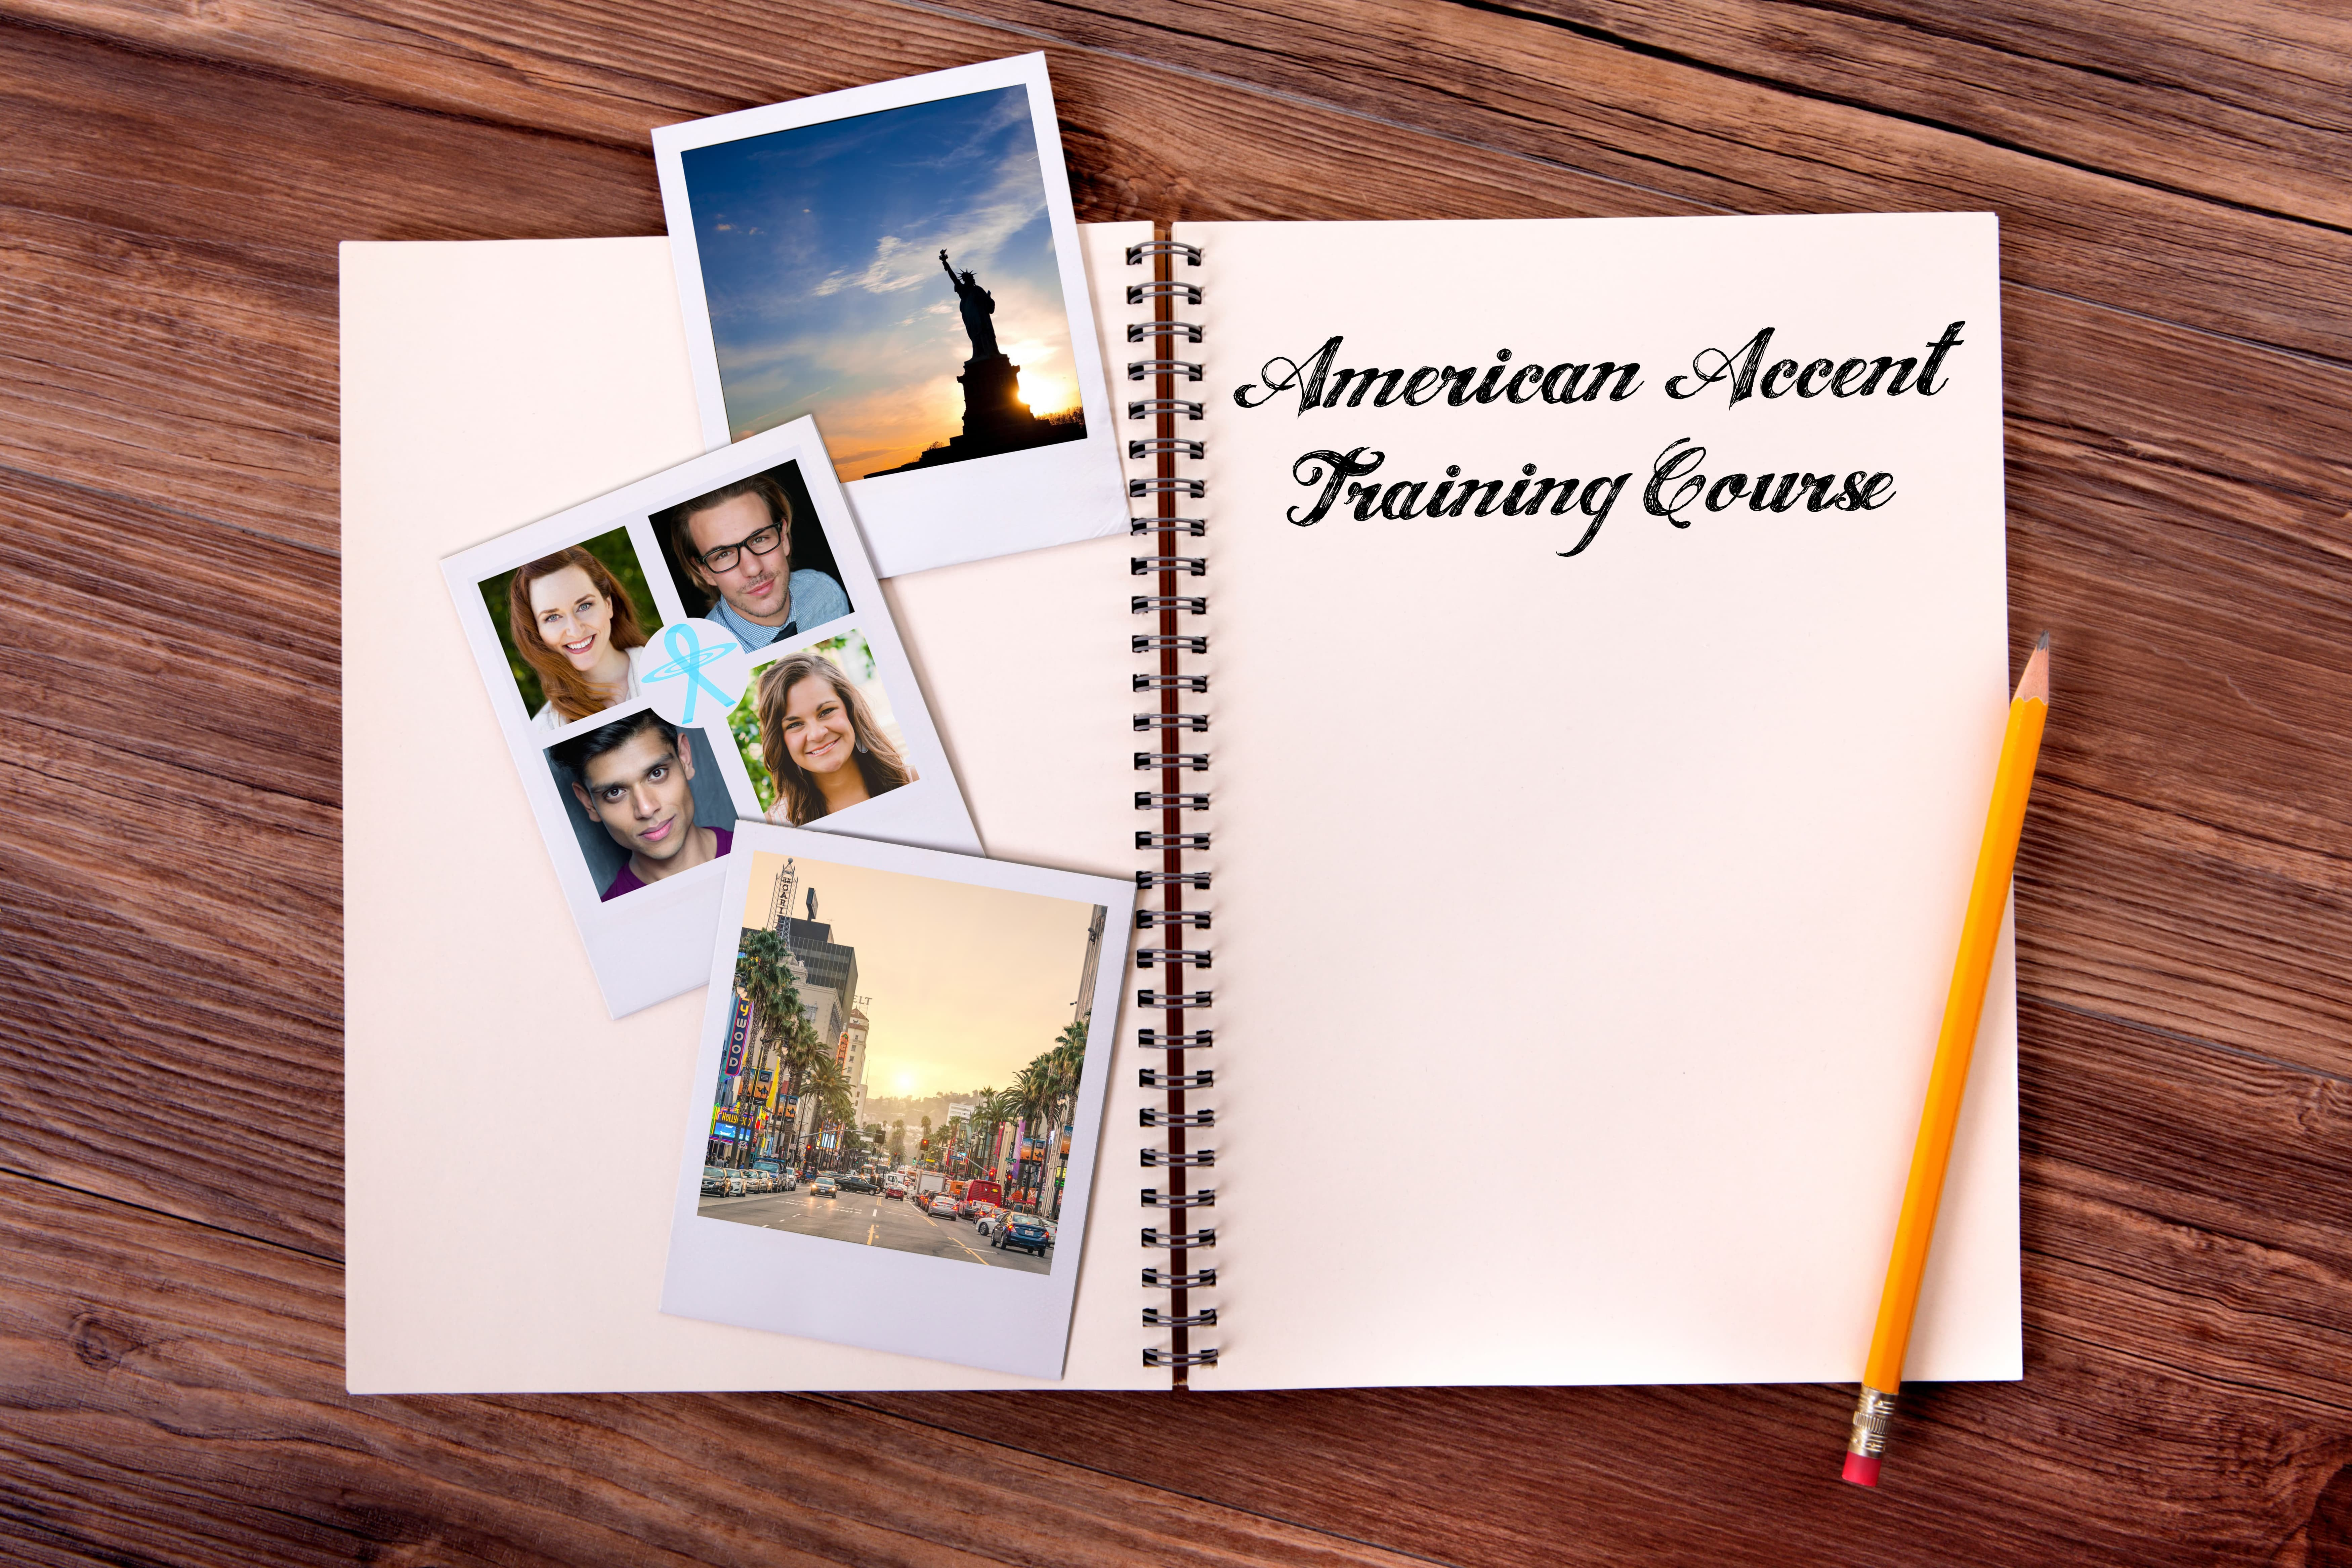 American Accent Training Course   21 Accents